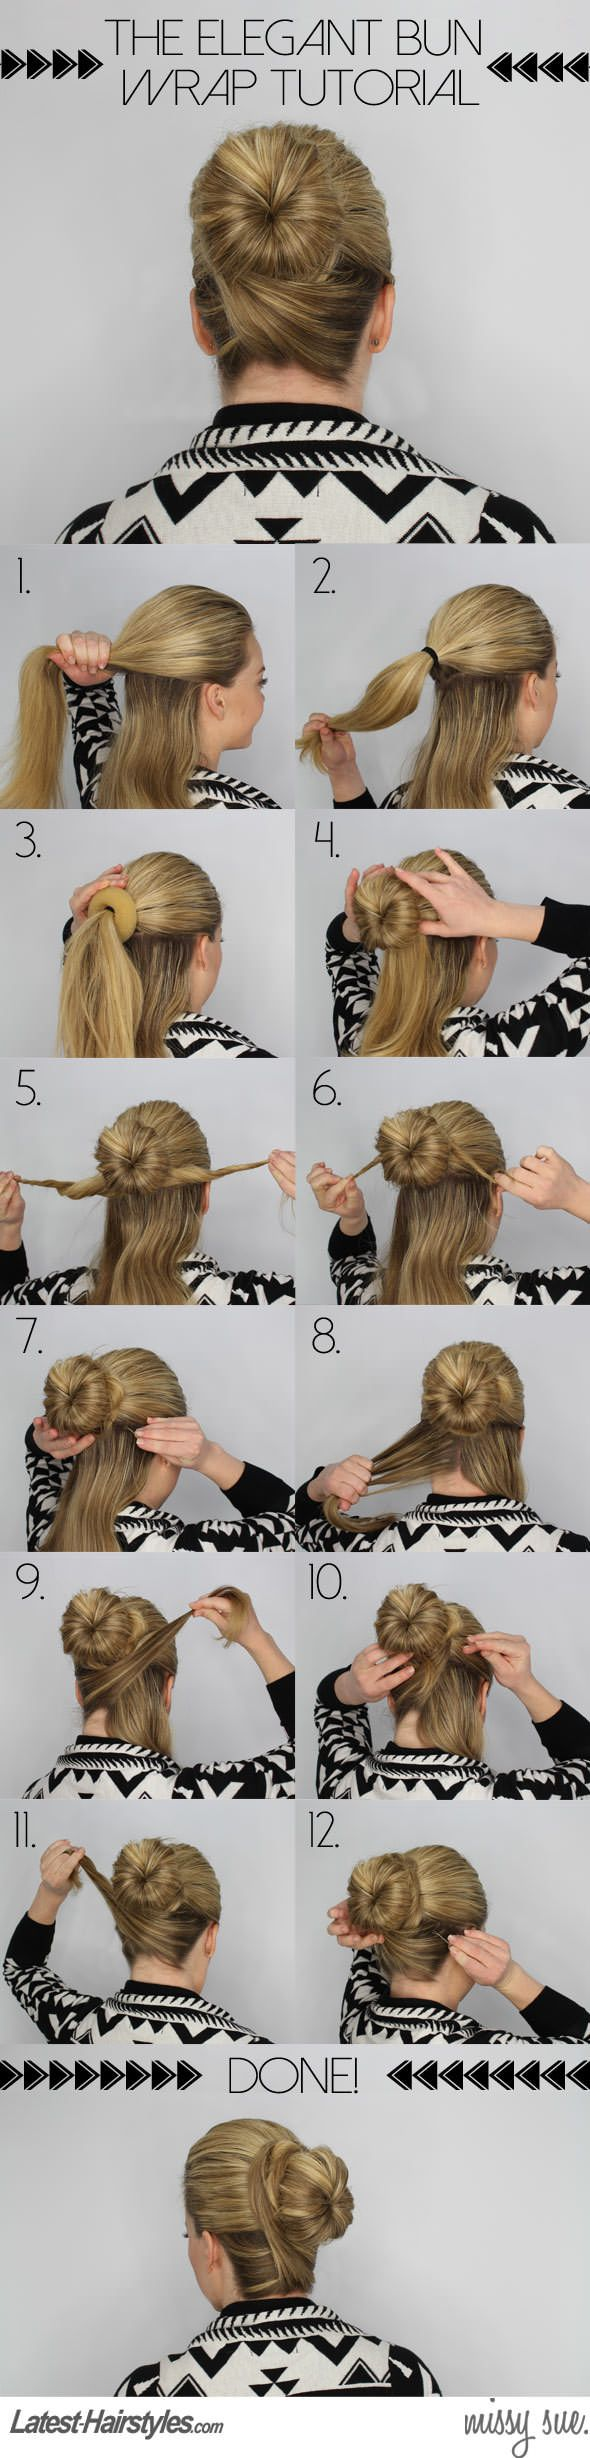 21 Super Easy Updos for Beginners to Try in 2020